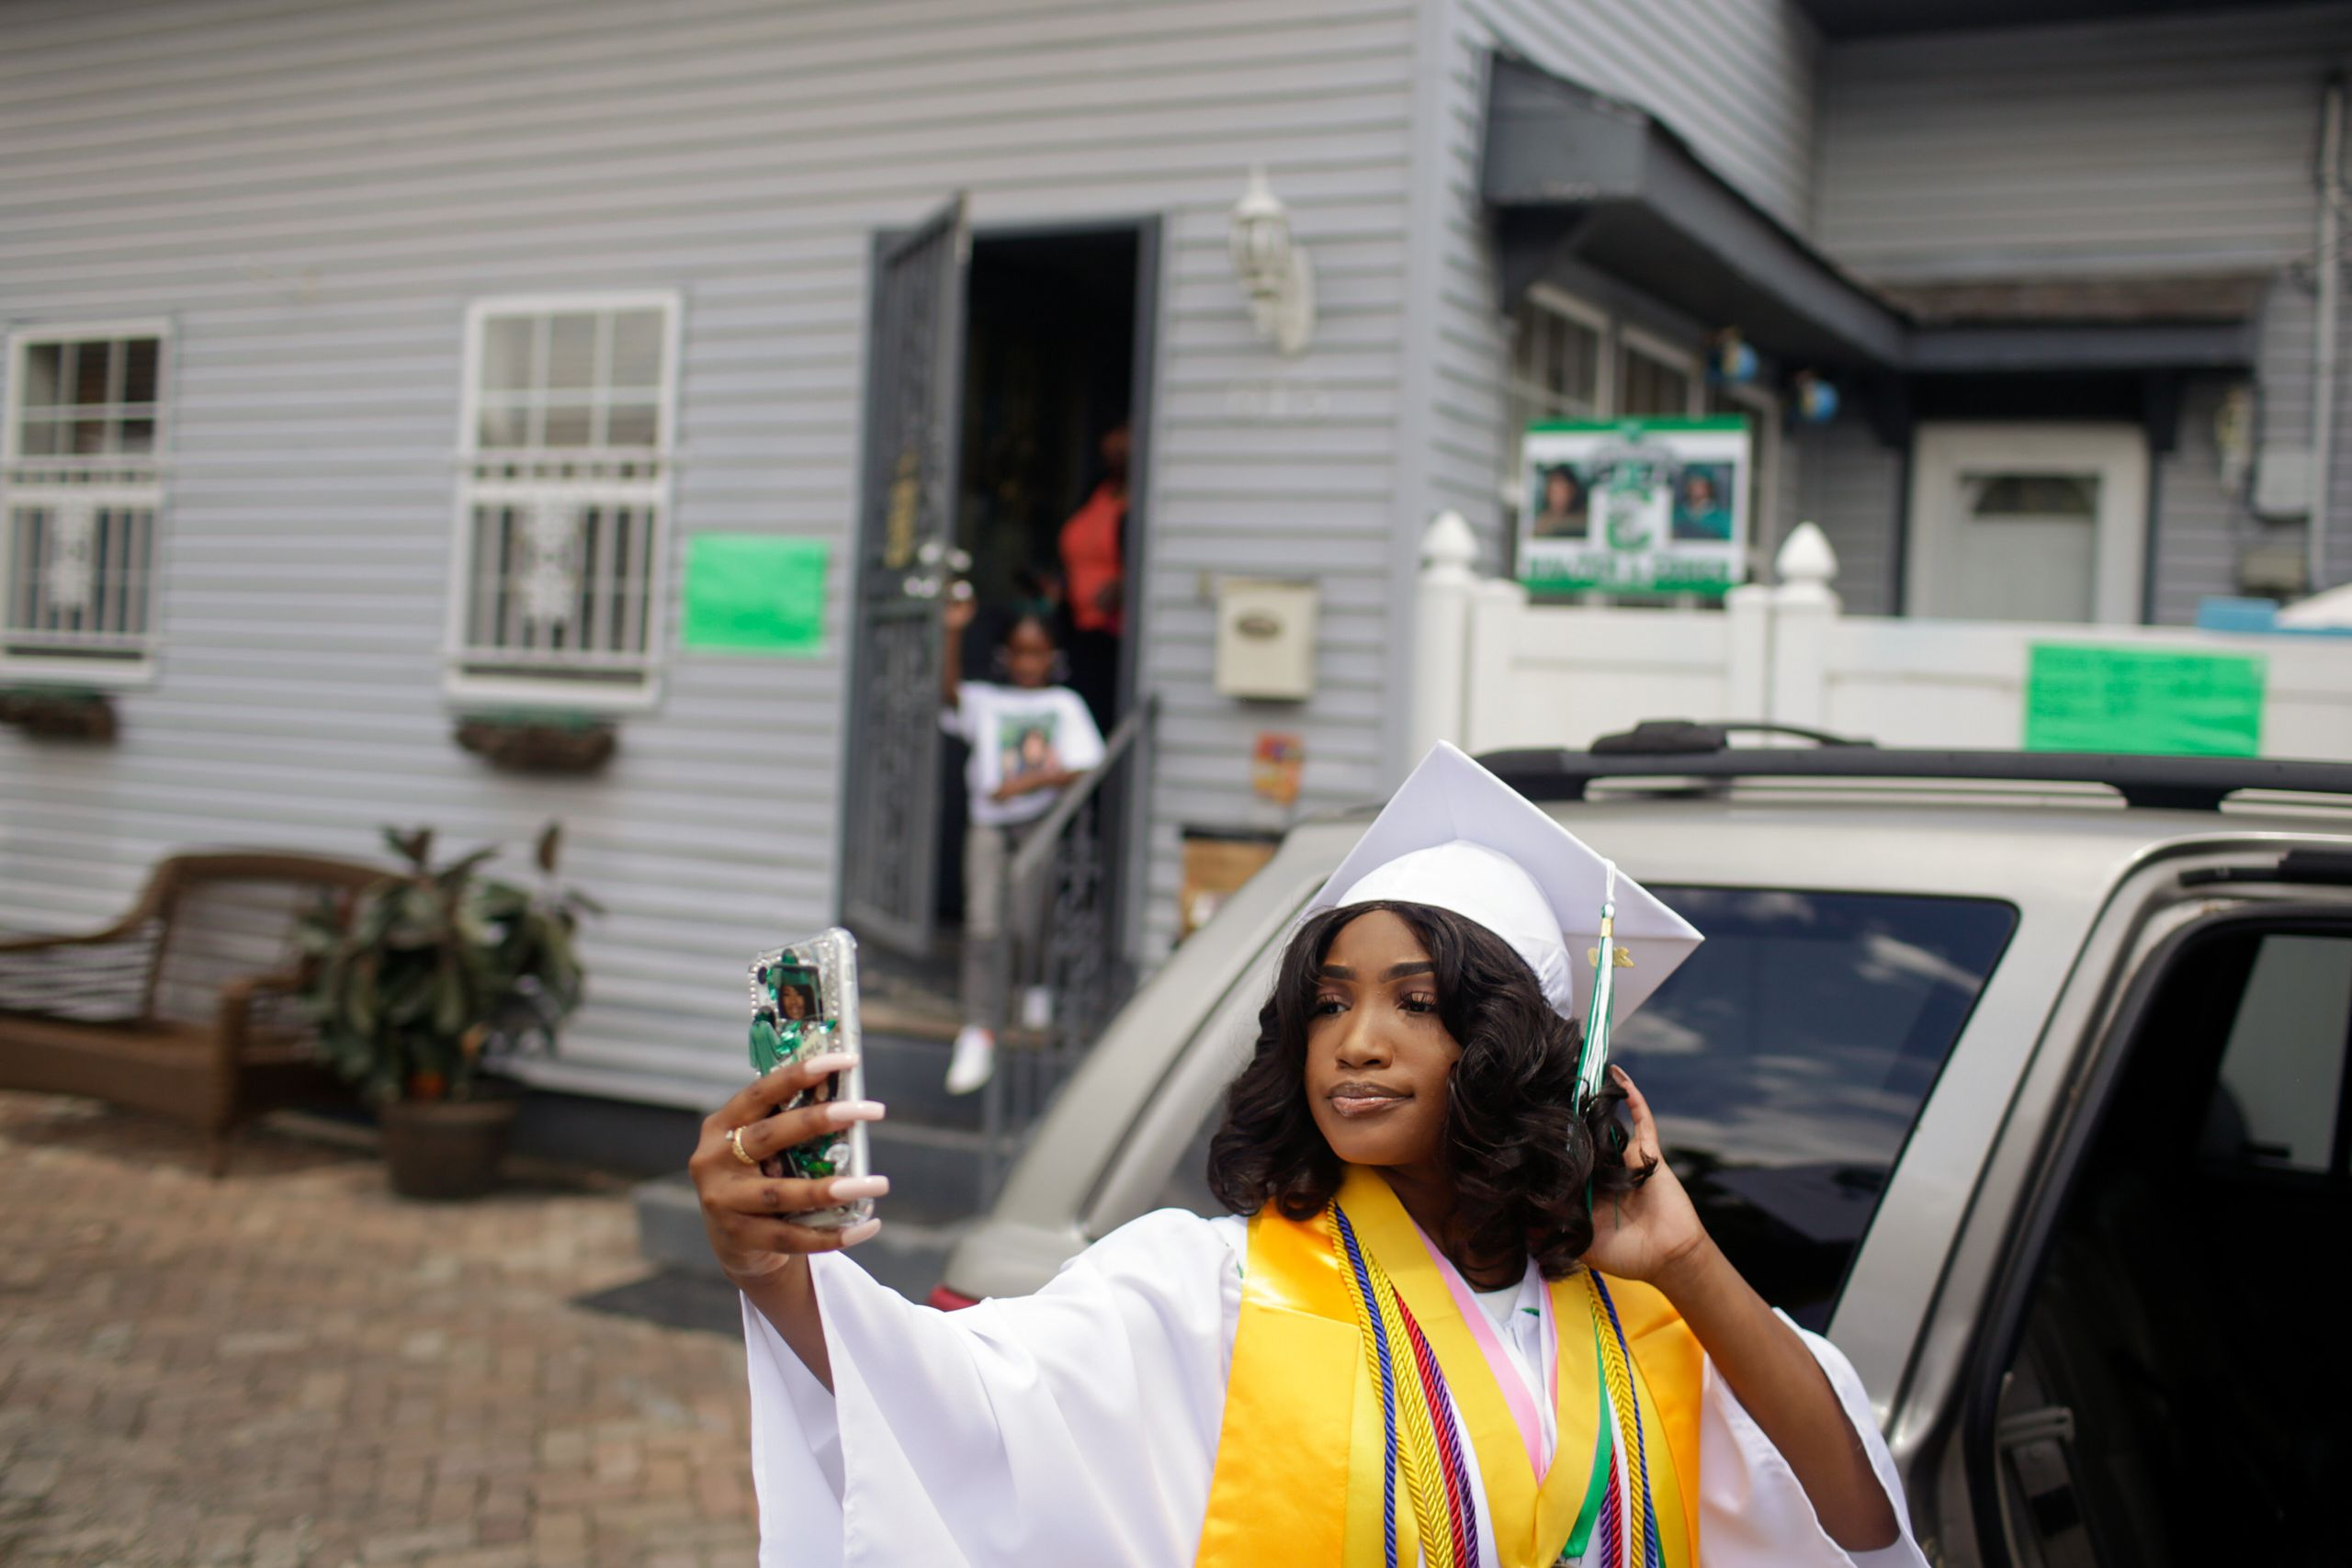 Satoriya Lambert takes a selfie before heading to her high school graduation ceremony on May 27.